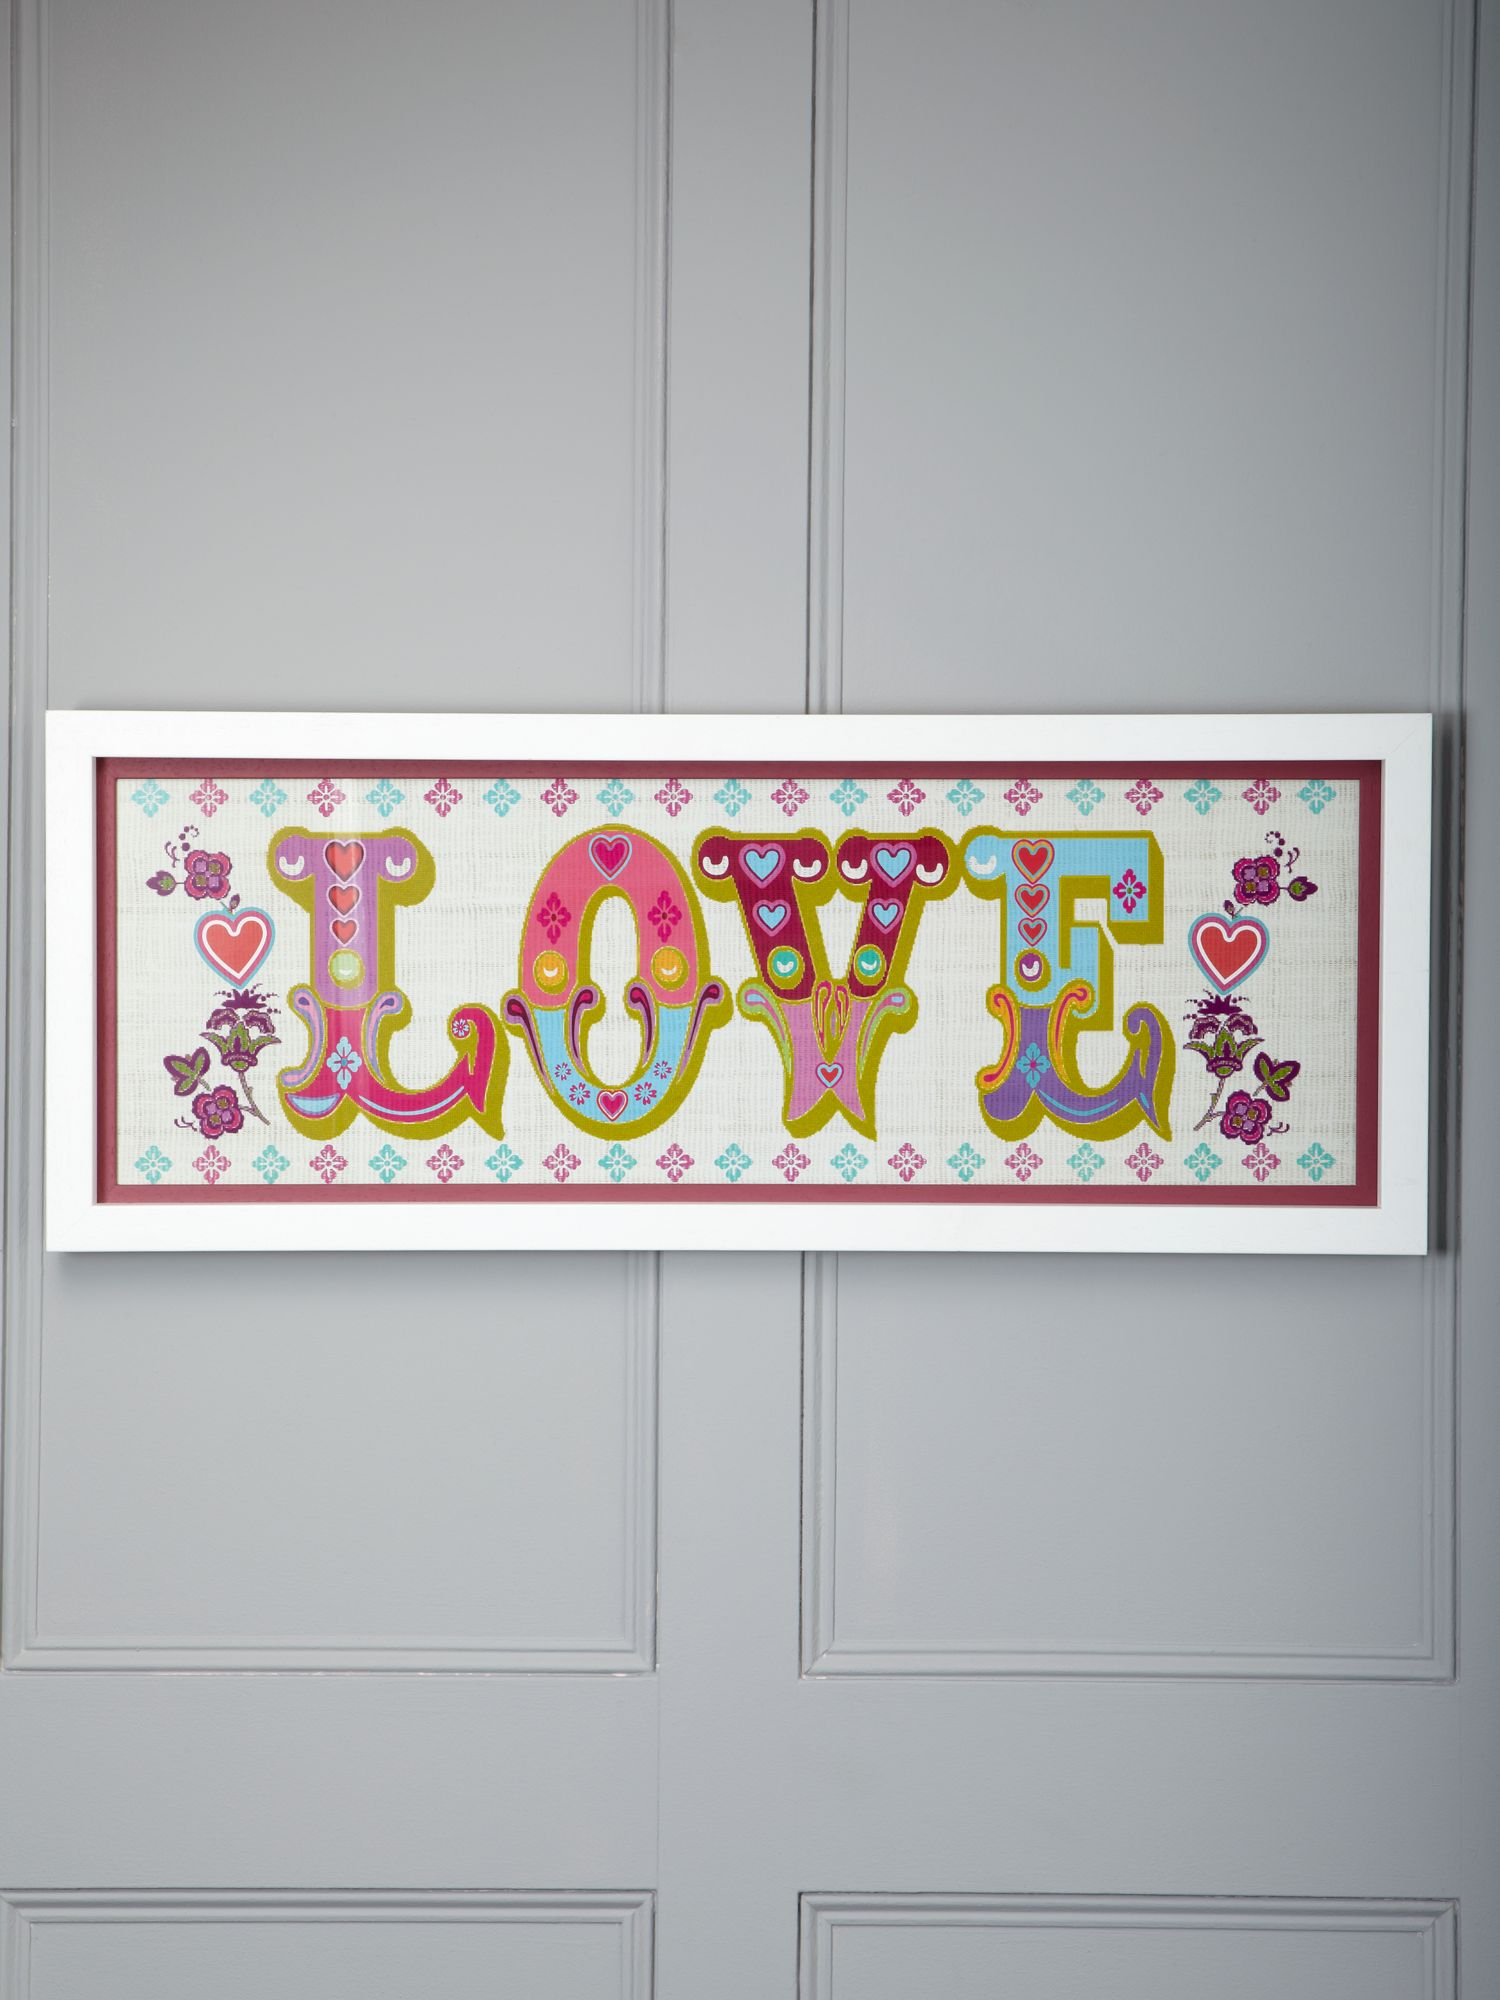 Love circus print framed wall art